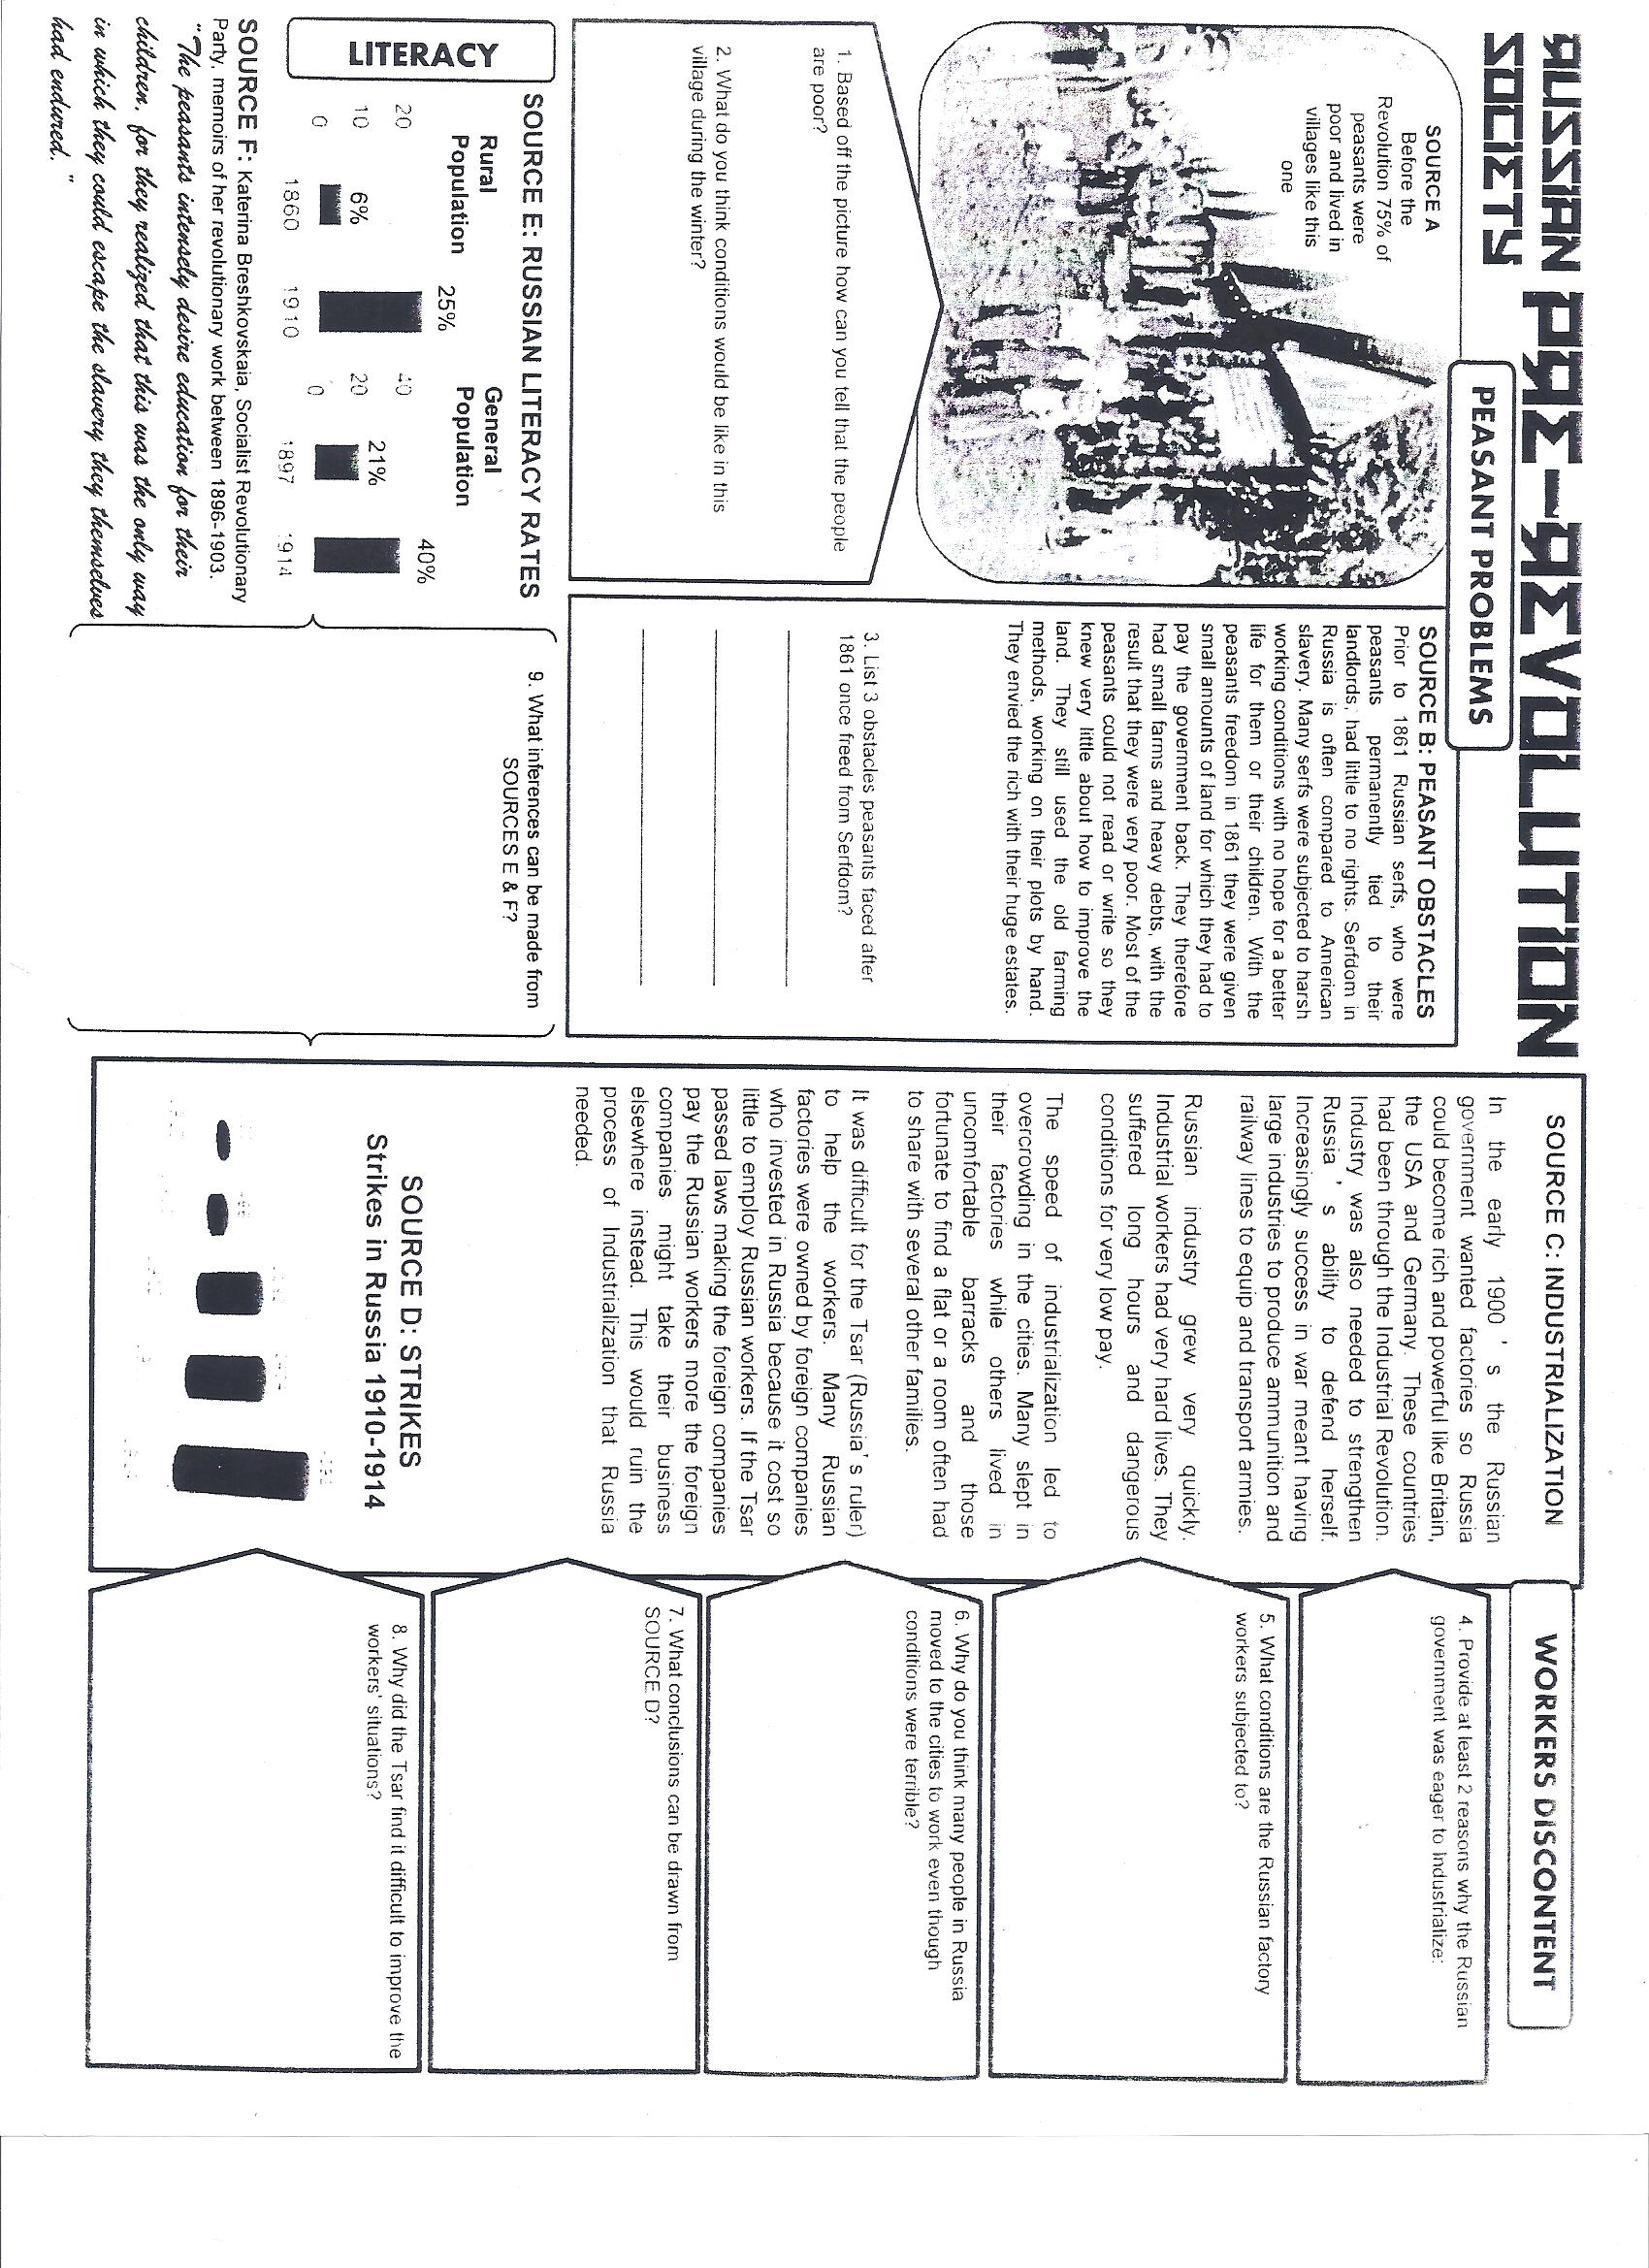 W. History Worksheets